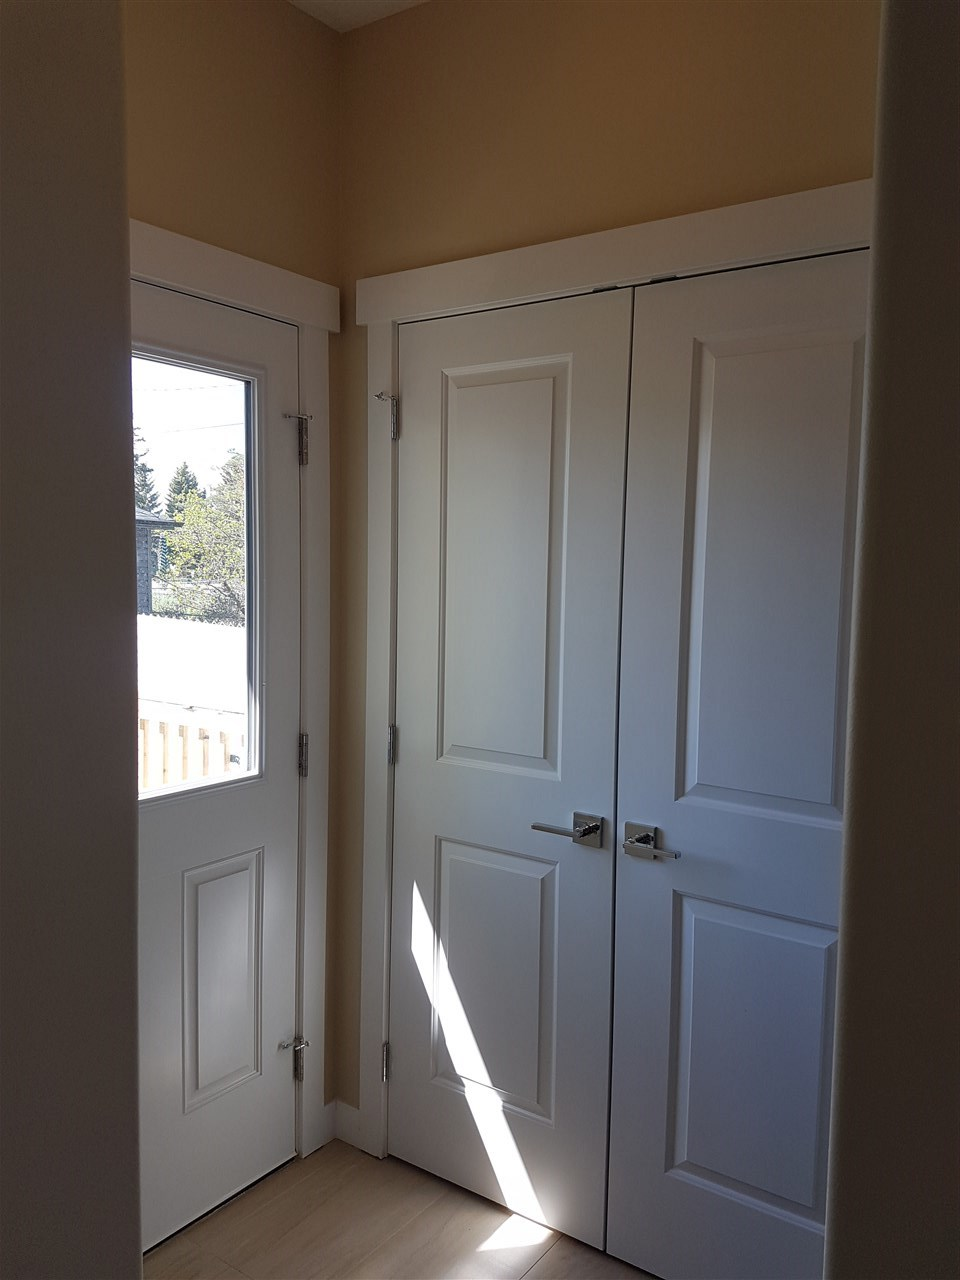 rear door and closet